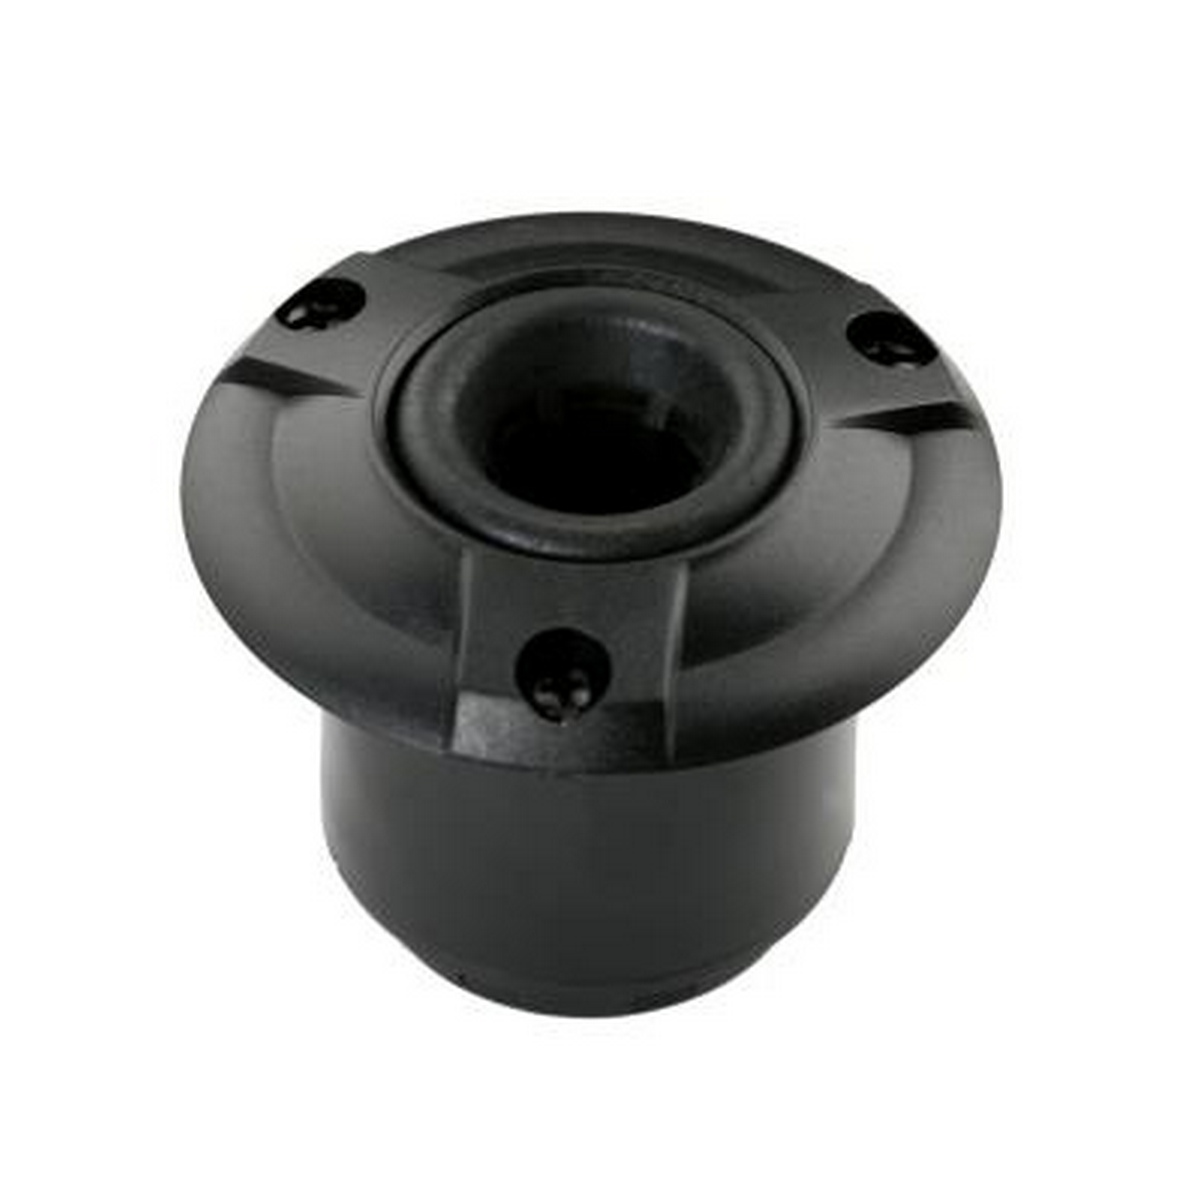 Audix SMT1218R Shockmount adapter for podium style mics for permanent installation. Rubber insulated.